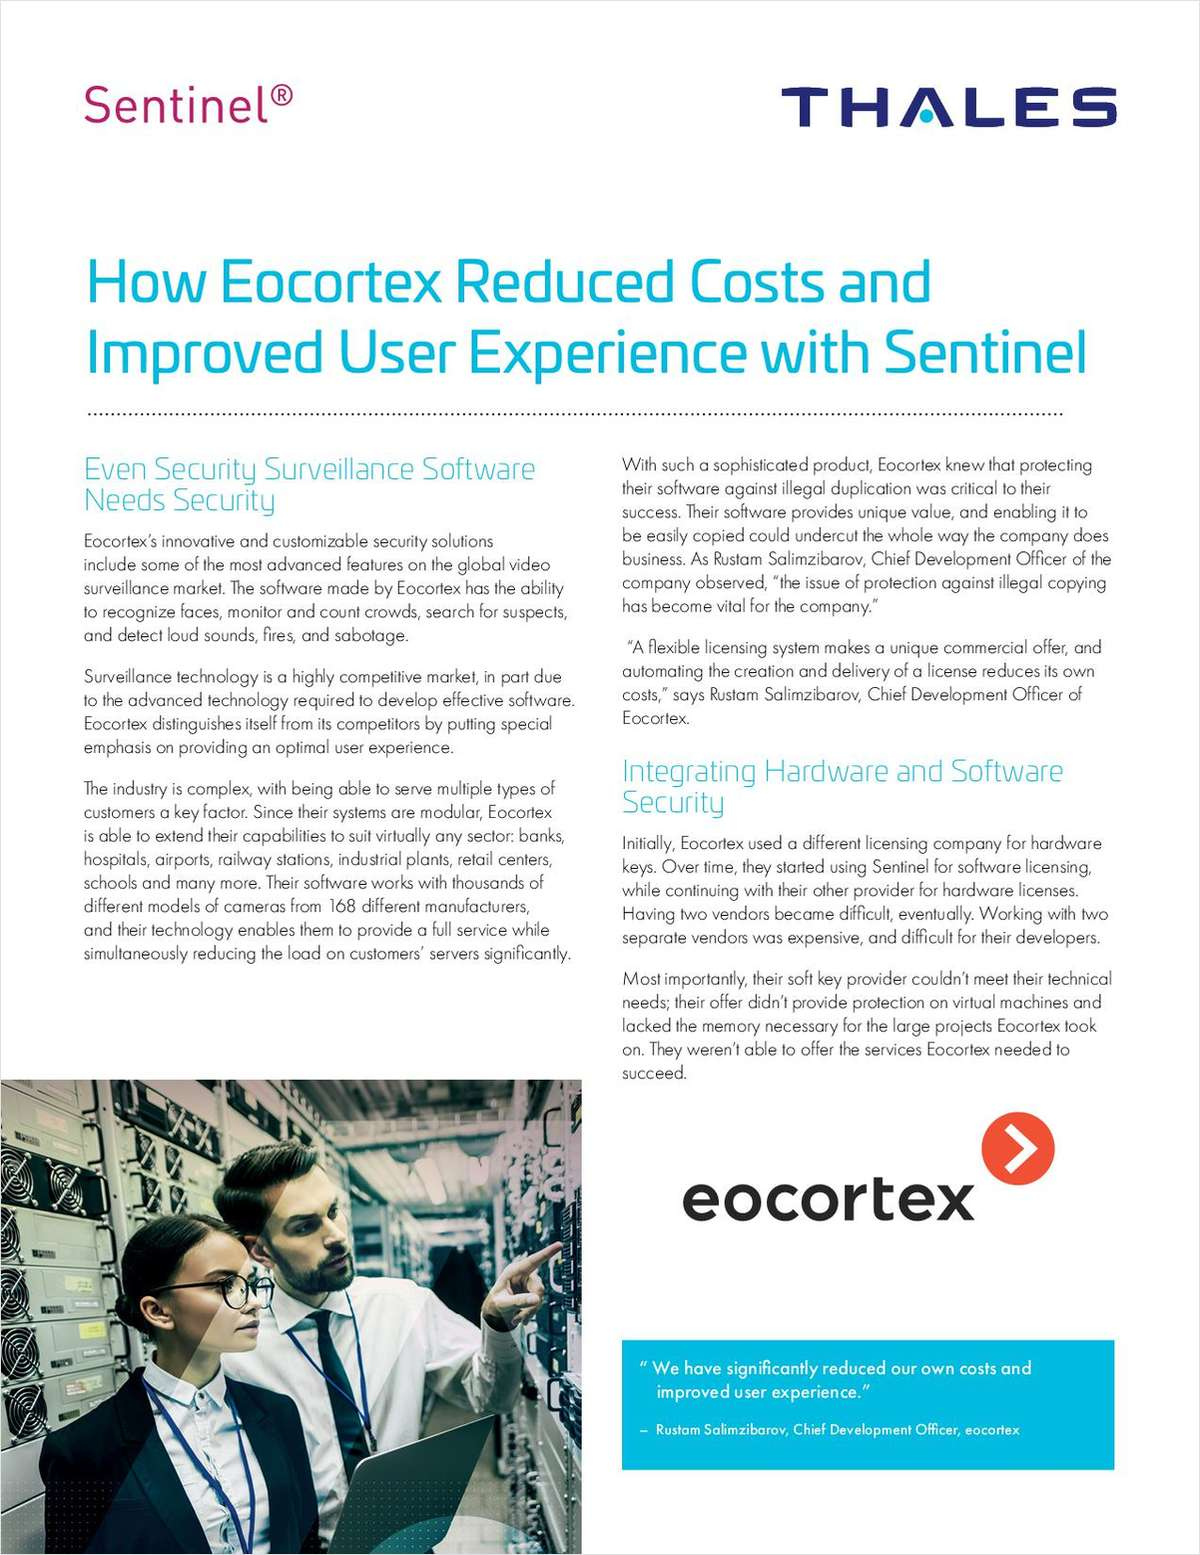 How Eocortex Reduced Costs and Improved User Experience with Thales Sentinel